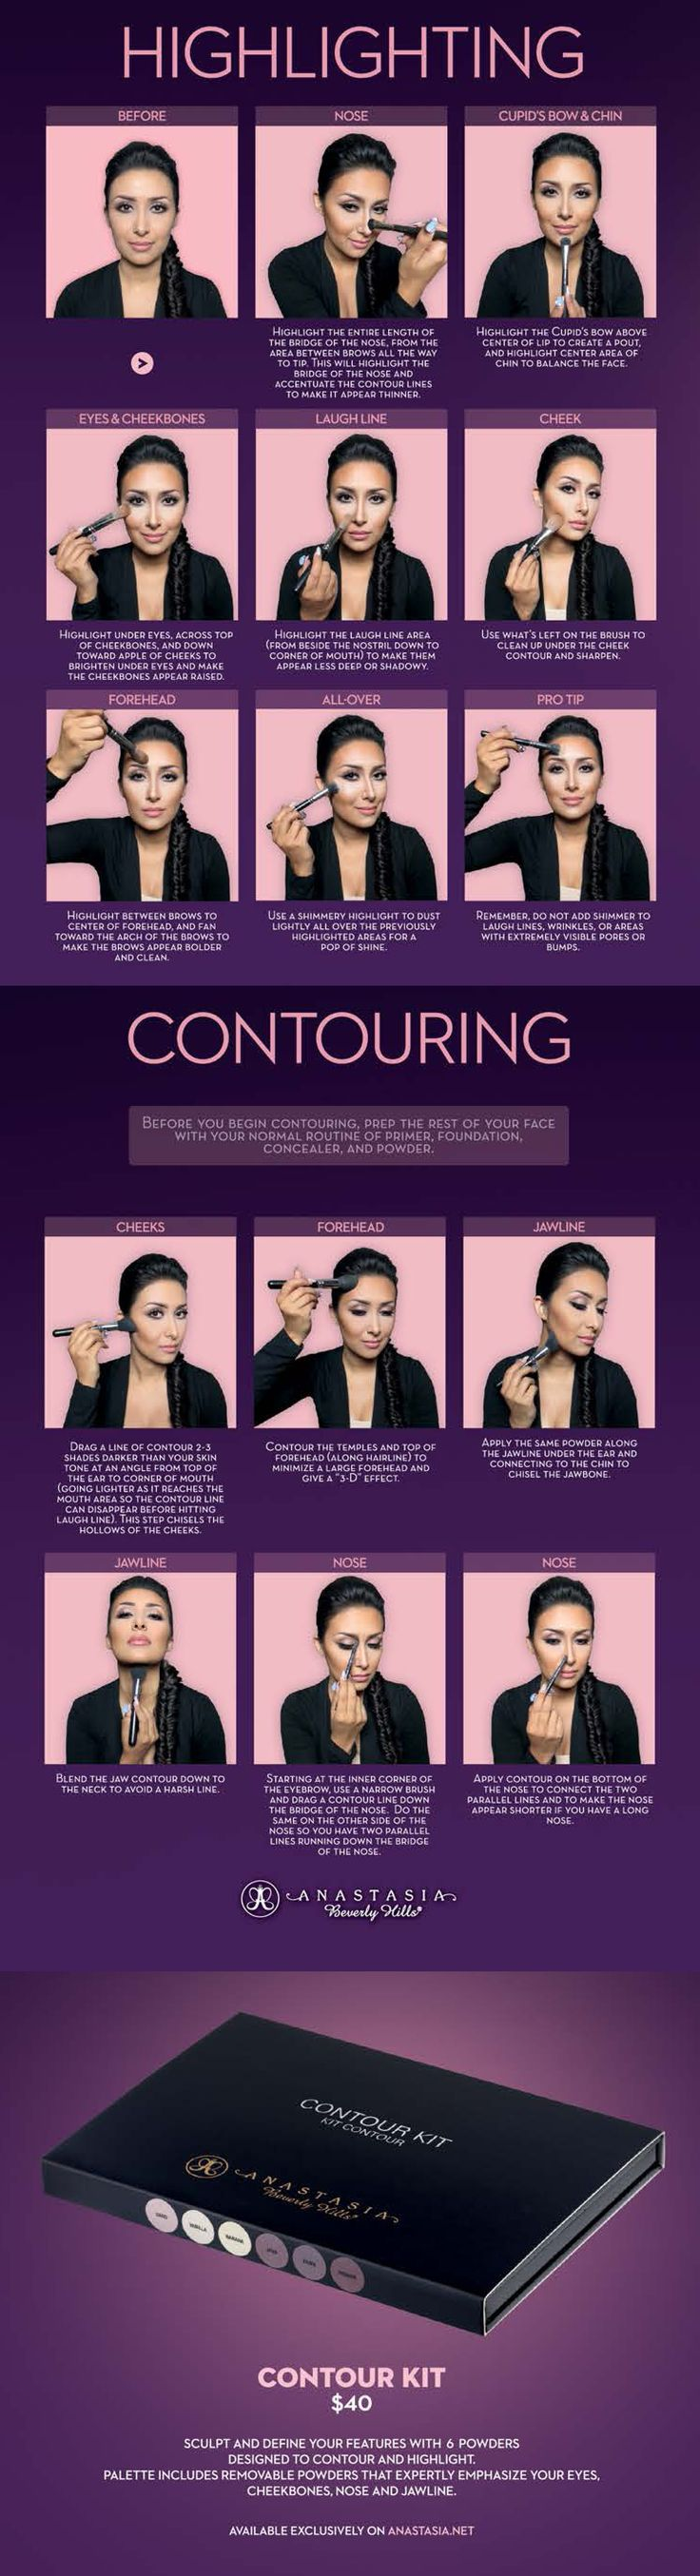 Highlighting contouring HOW TO with the new #Anastasia Contour Palette featuring Tamanna Roashan.